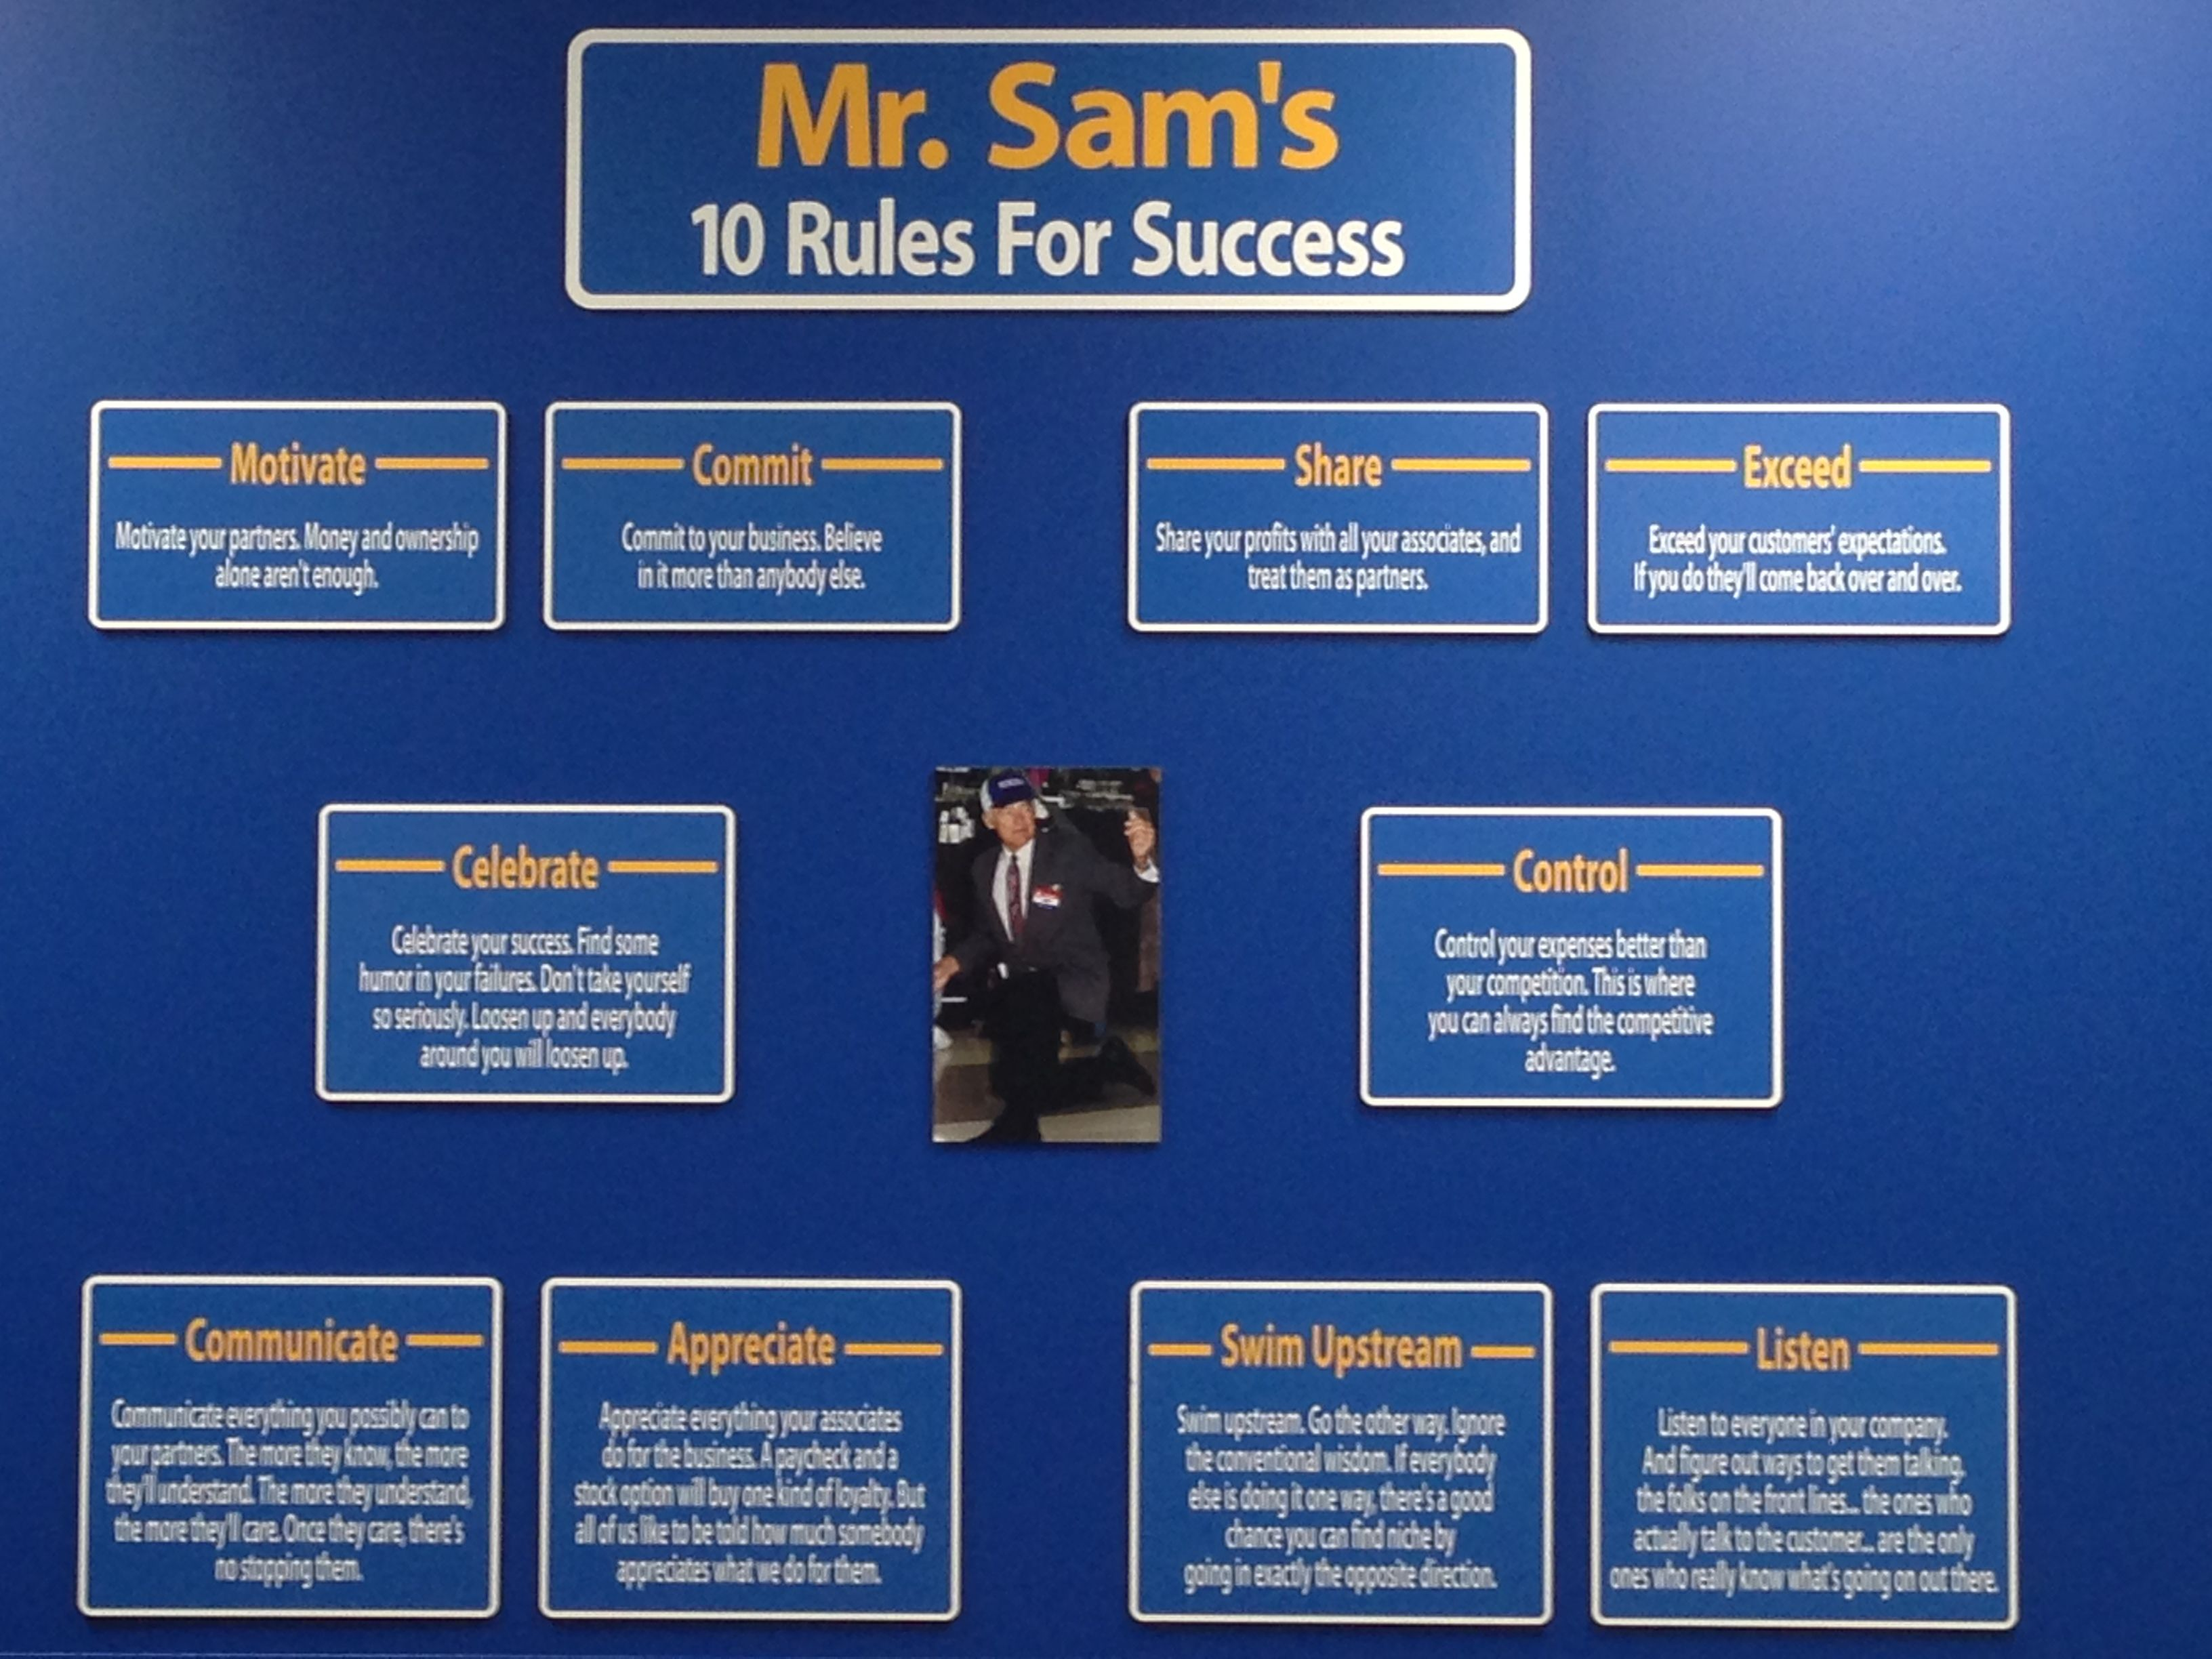 training and development walmart and sam s Walmart is testing a new upskilling training program for entry level employees that provides instruction through two or three-minute, game-like computer modules walmart taps technology to train front-line workers | fierceretail.